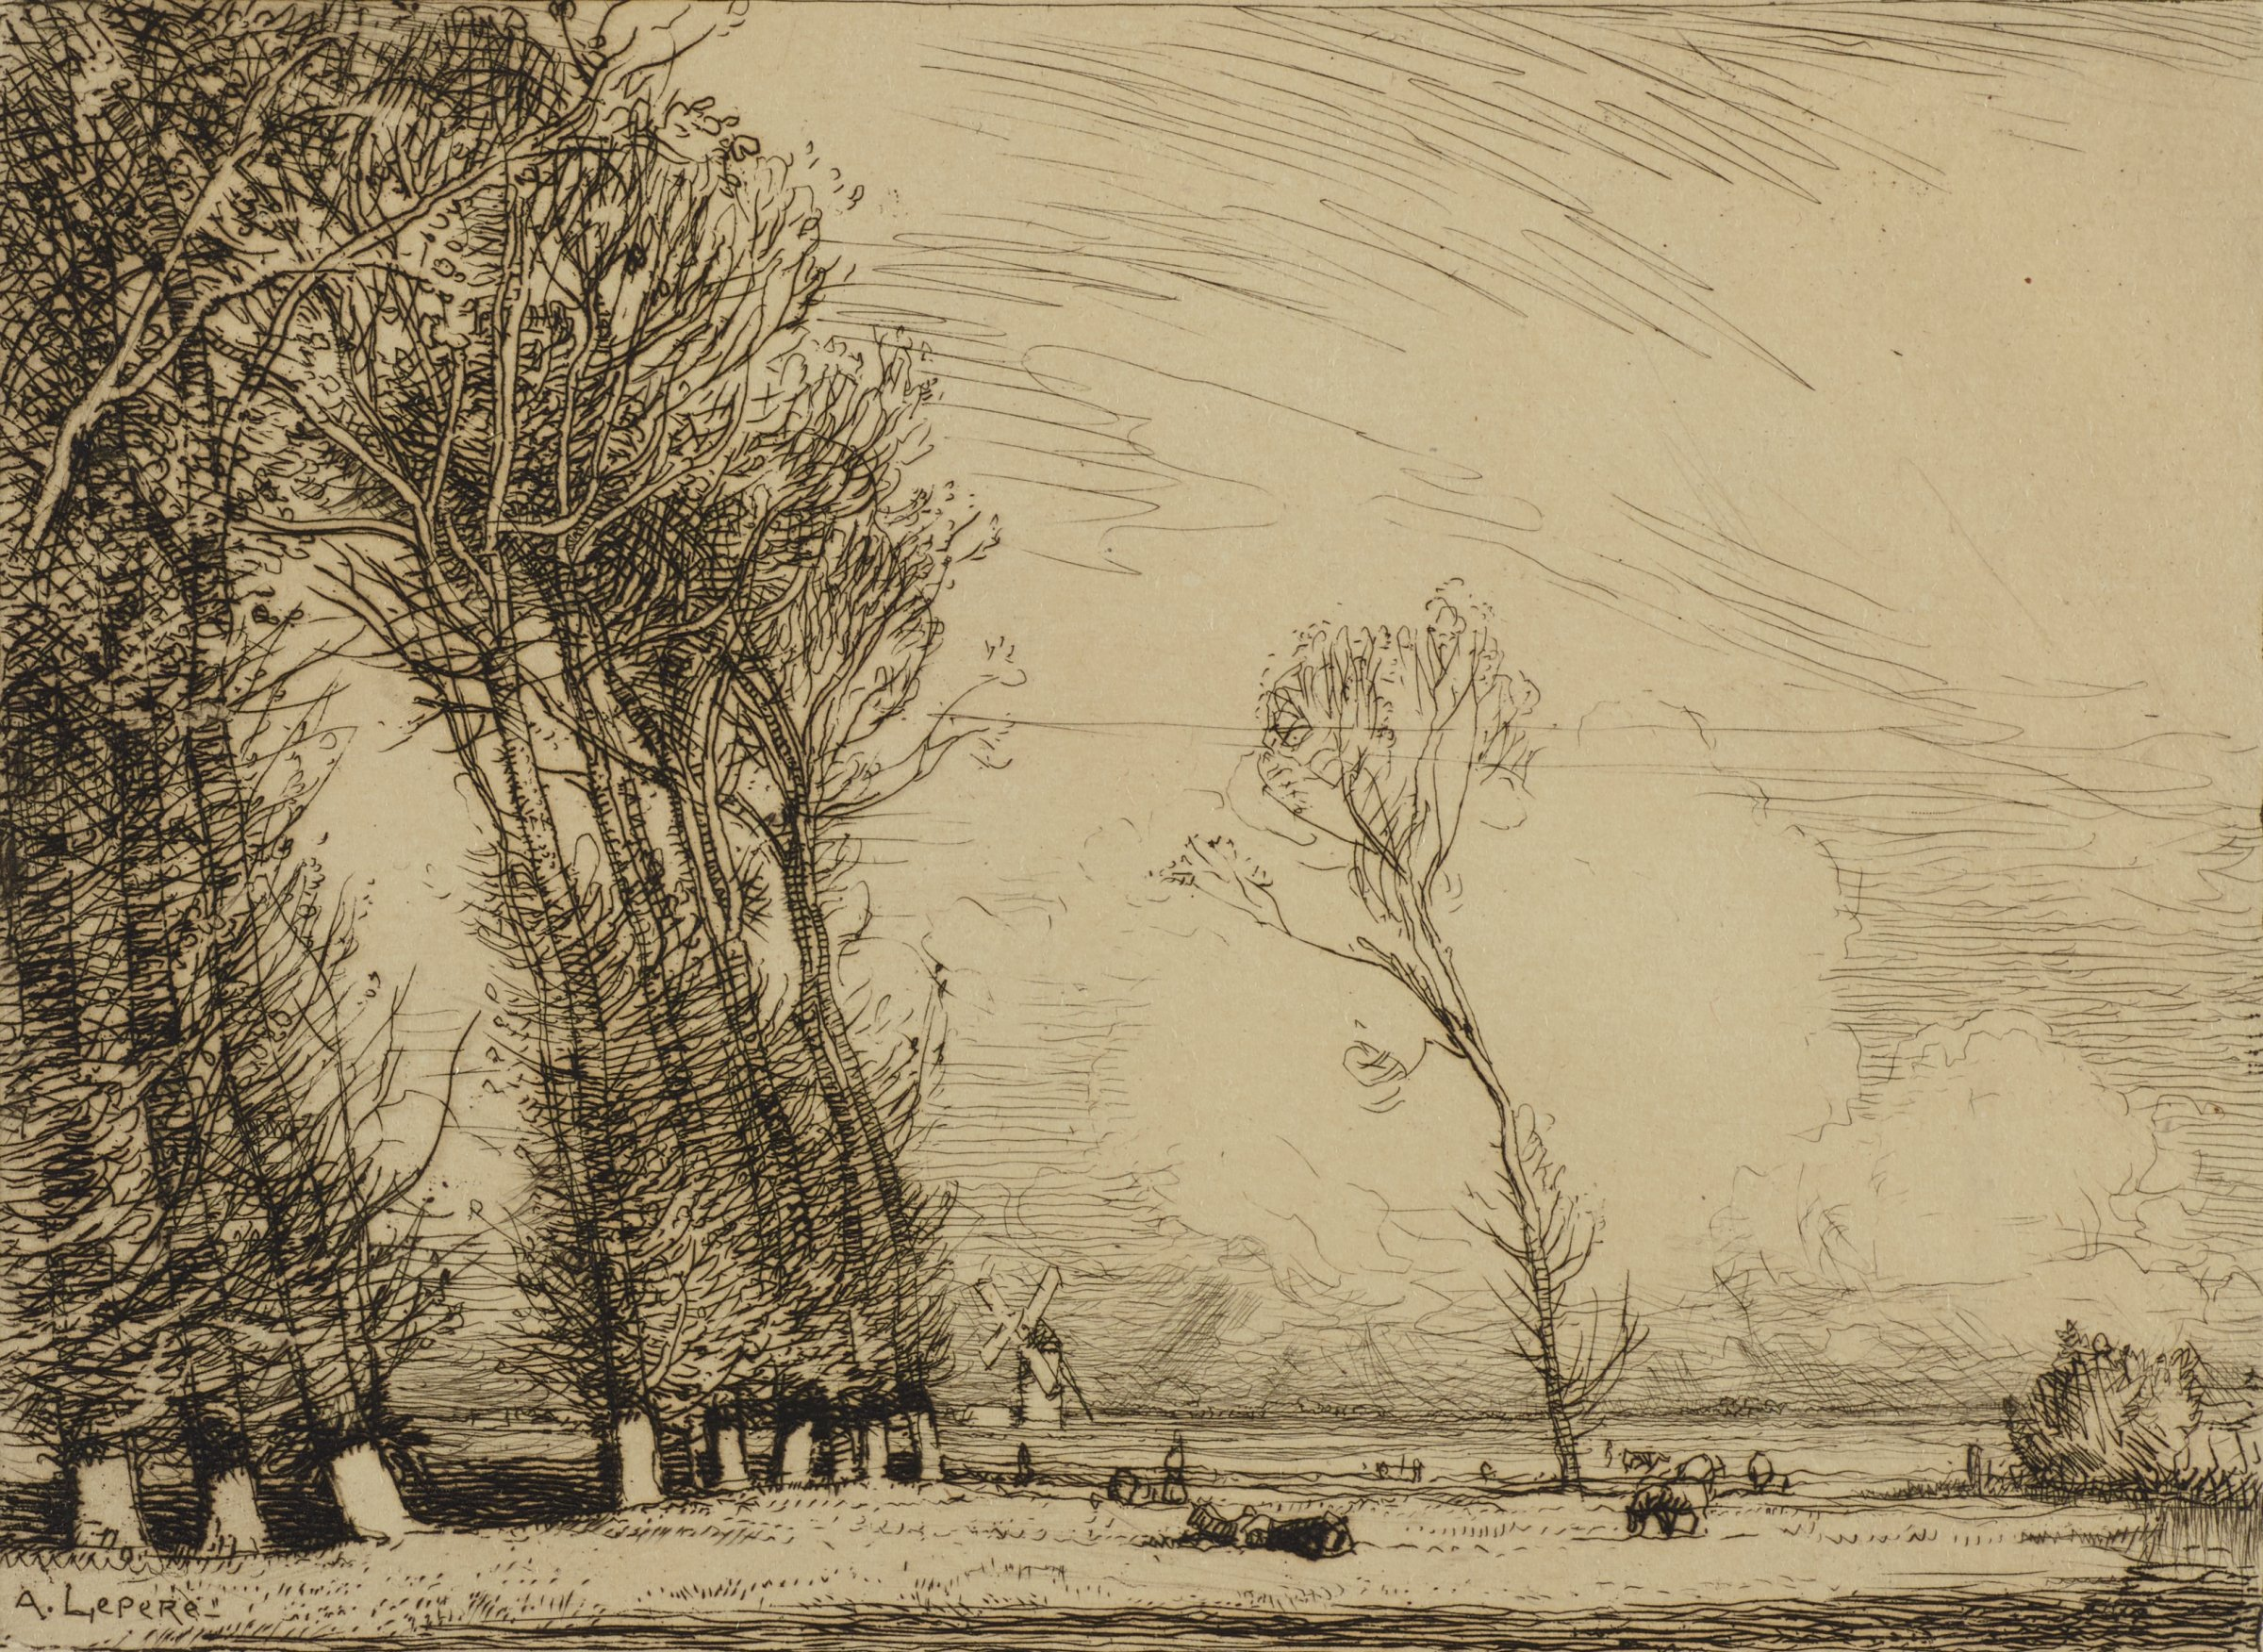 On the left, stands a line of tall poplar trees. One tree, half grown, stands near the center. Livestock grazes in a grassy field. A windmill turns in the distance. Wind blows in from the right side causing the trees to bend slightly to the left.